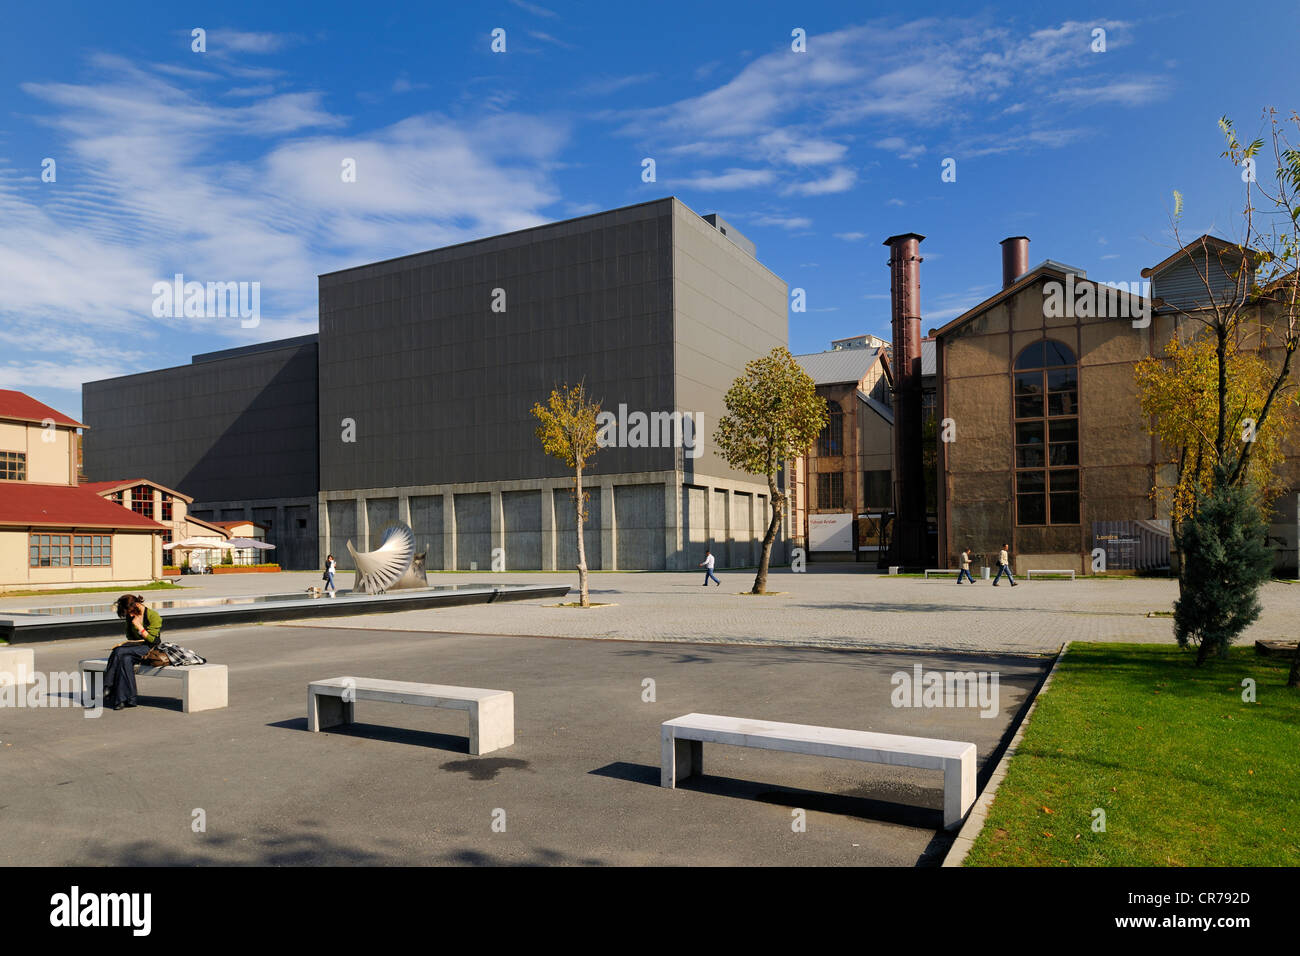 Turkey, Istanbul, Golden Horn, Eyup District, Santralistanbul Contemporary Art Center (Santral Istanbul) by architects - Stock Image